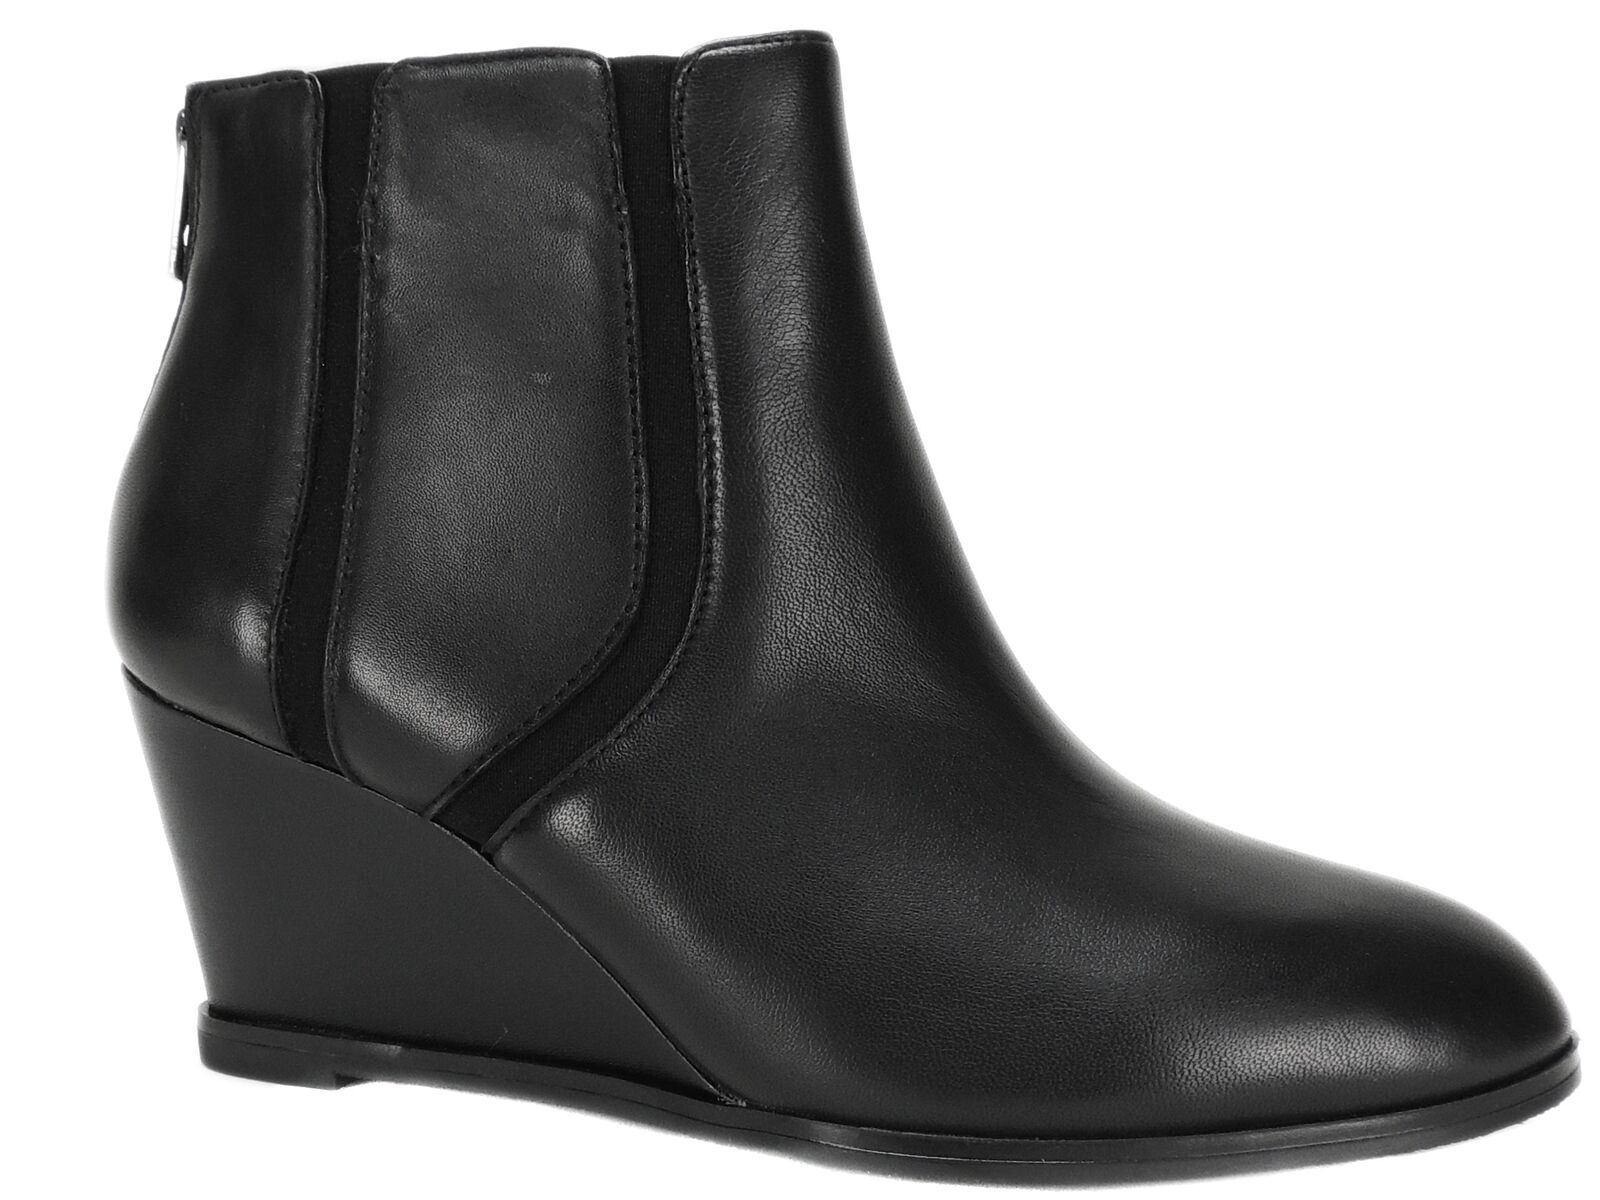 in cerca di agente di vendita Alfani Donna Donna Donna  Calistah Wedge Ankle stivali nero Leather Dimensione 7.5 M  Sconto del 40%